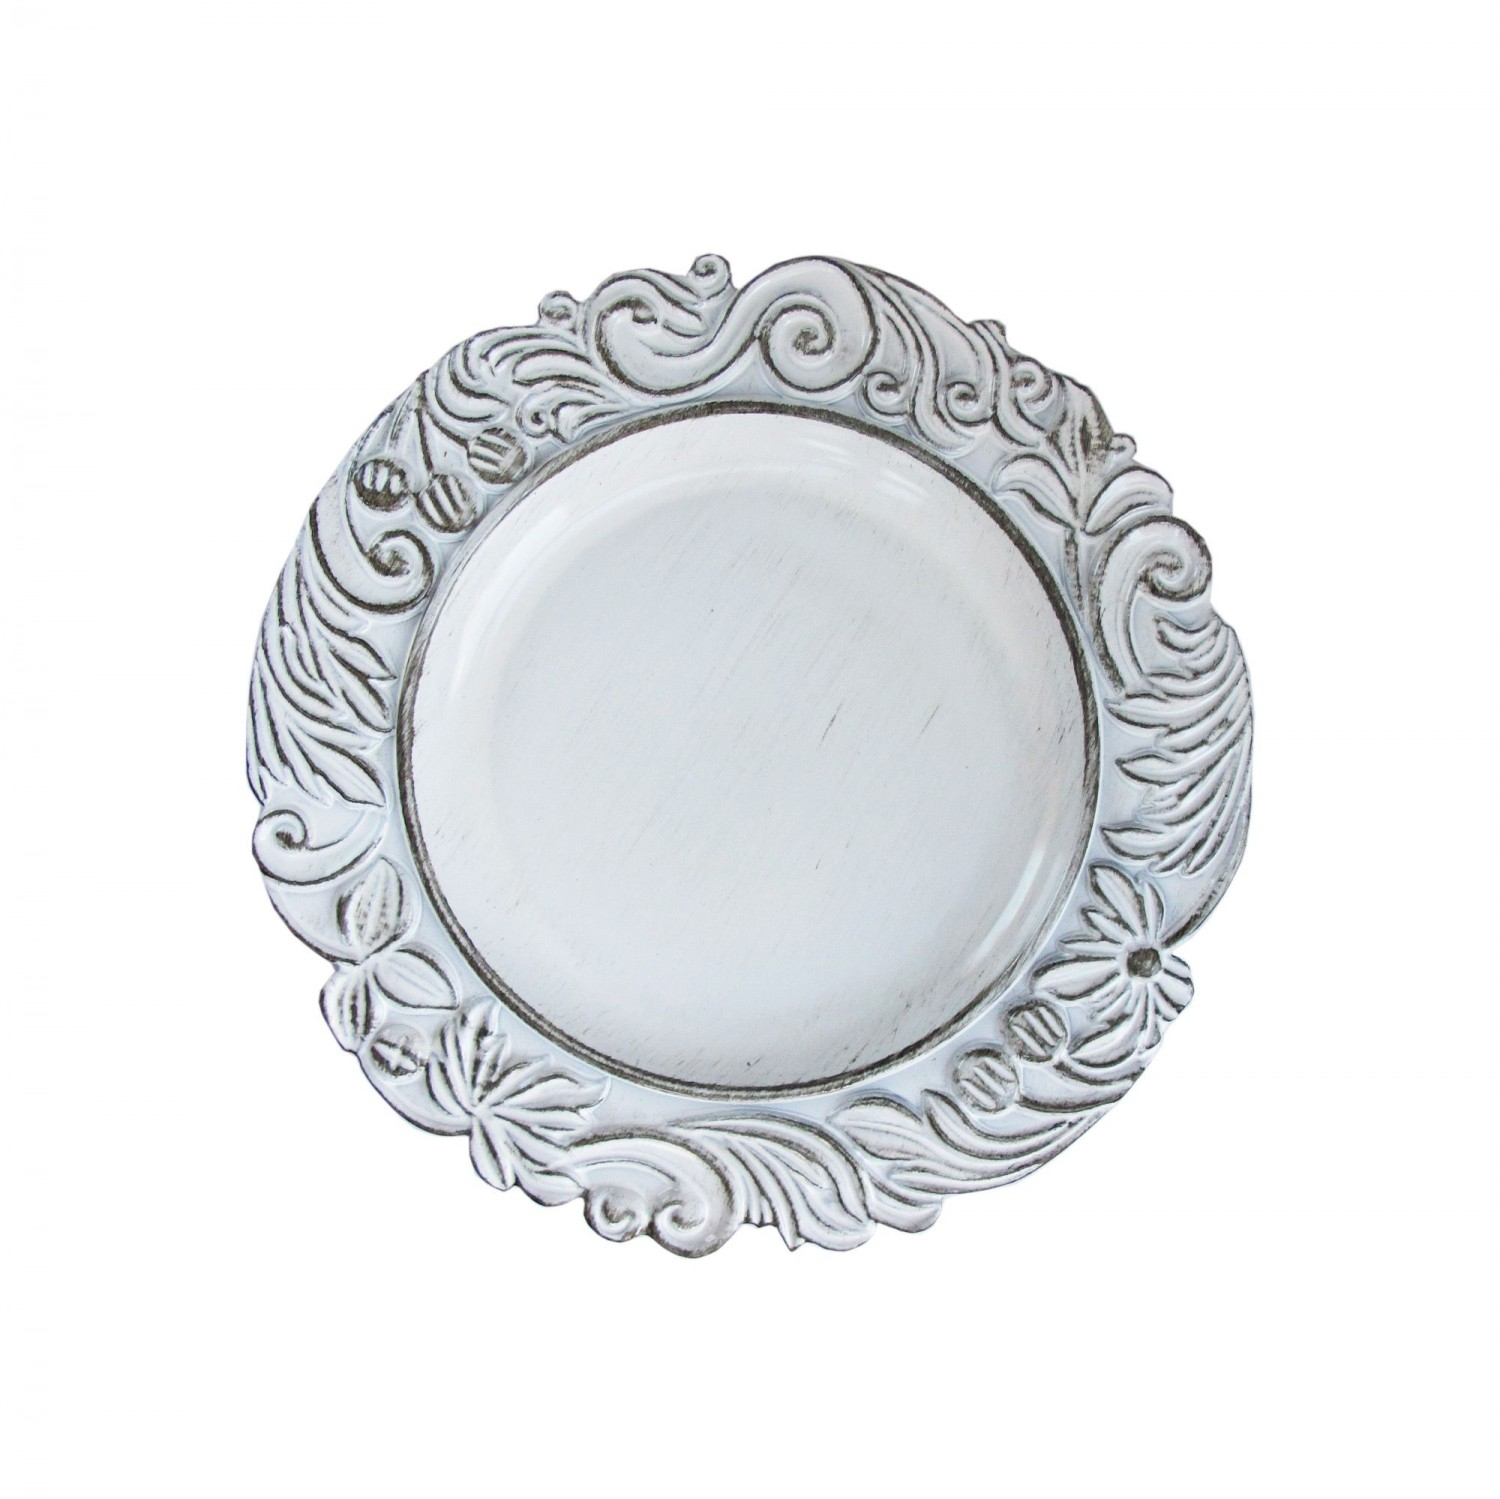 The Jay Companies 1270283 Round White Aristocrat Antique Charger Plate 14""